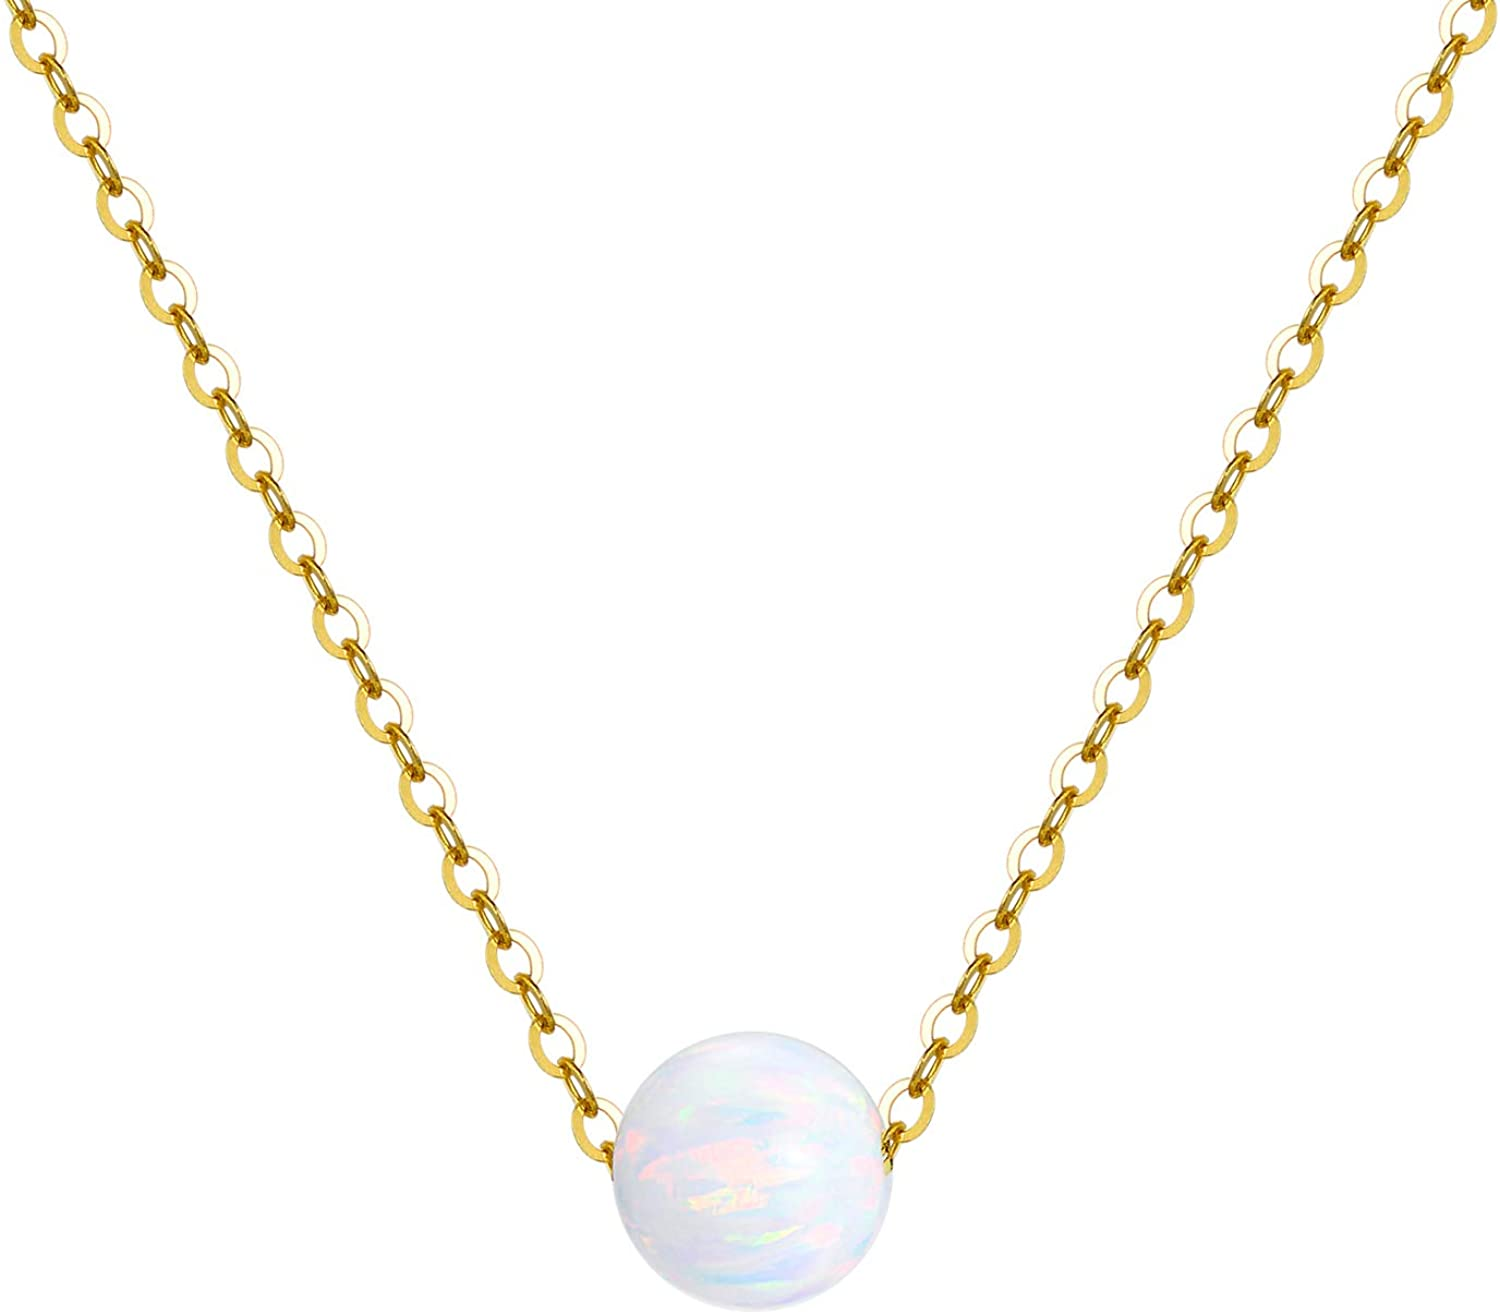 14K Solid Gold Necklace for Women, Yellow Gold Simulated Opal/Turquoise Bead Choker Pendant Necklaces Fine Jewelry Gifts for Mom, Wife, Girls, 16+2 inch